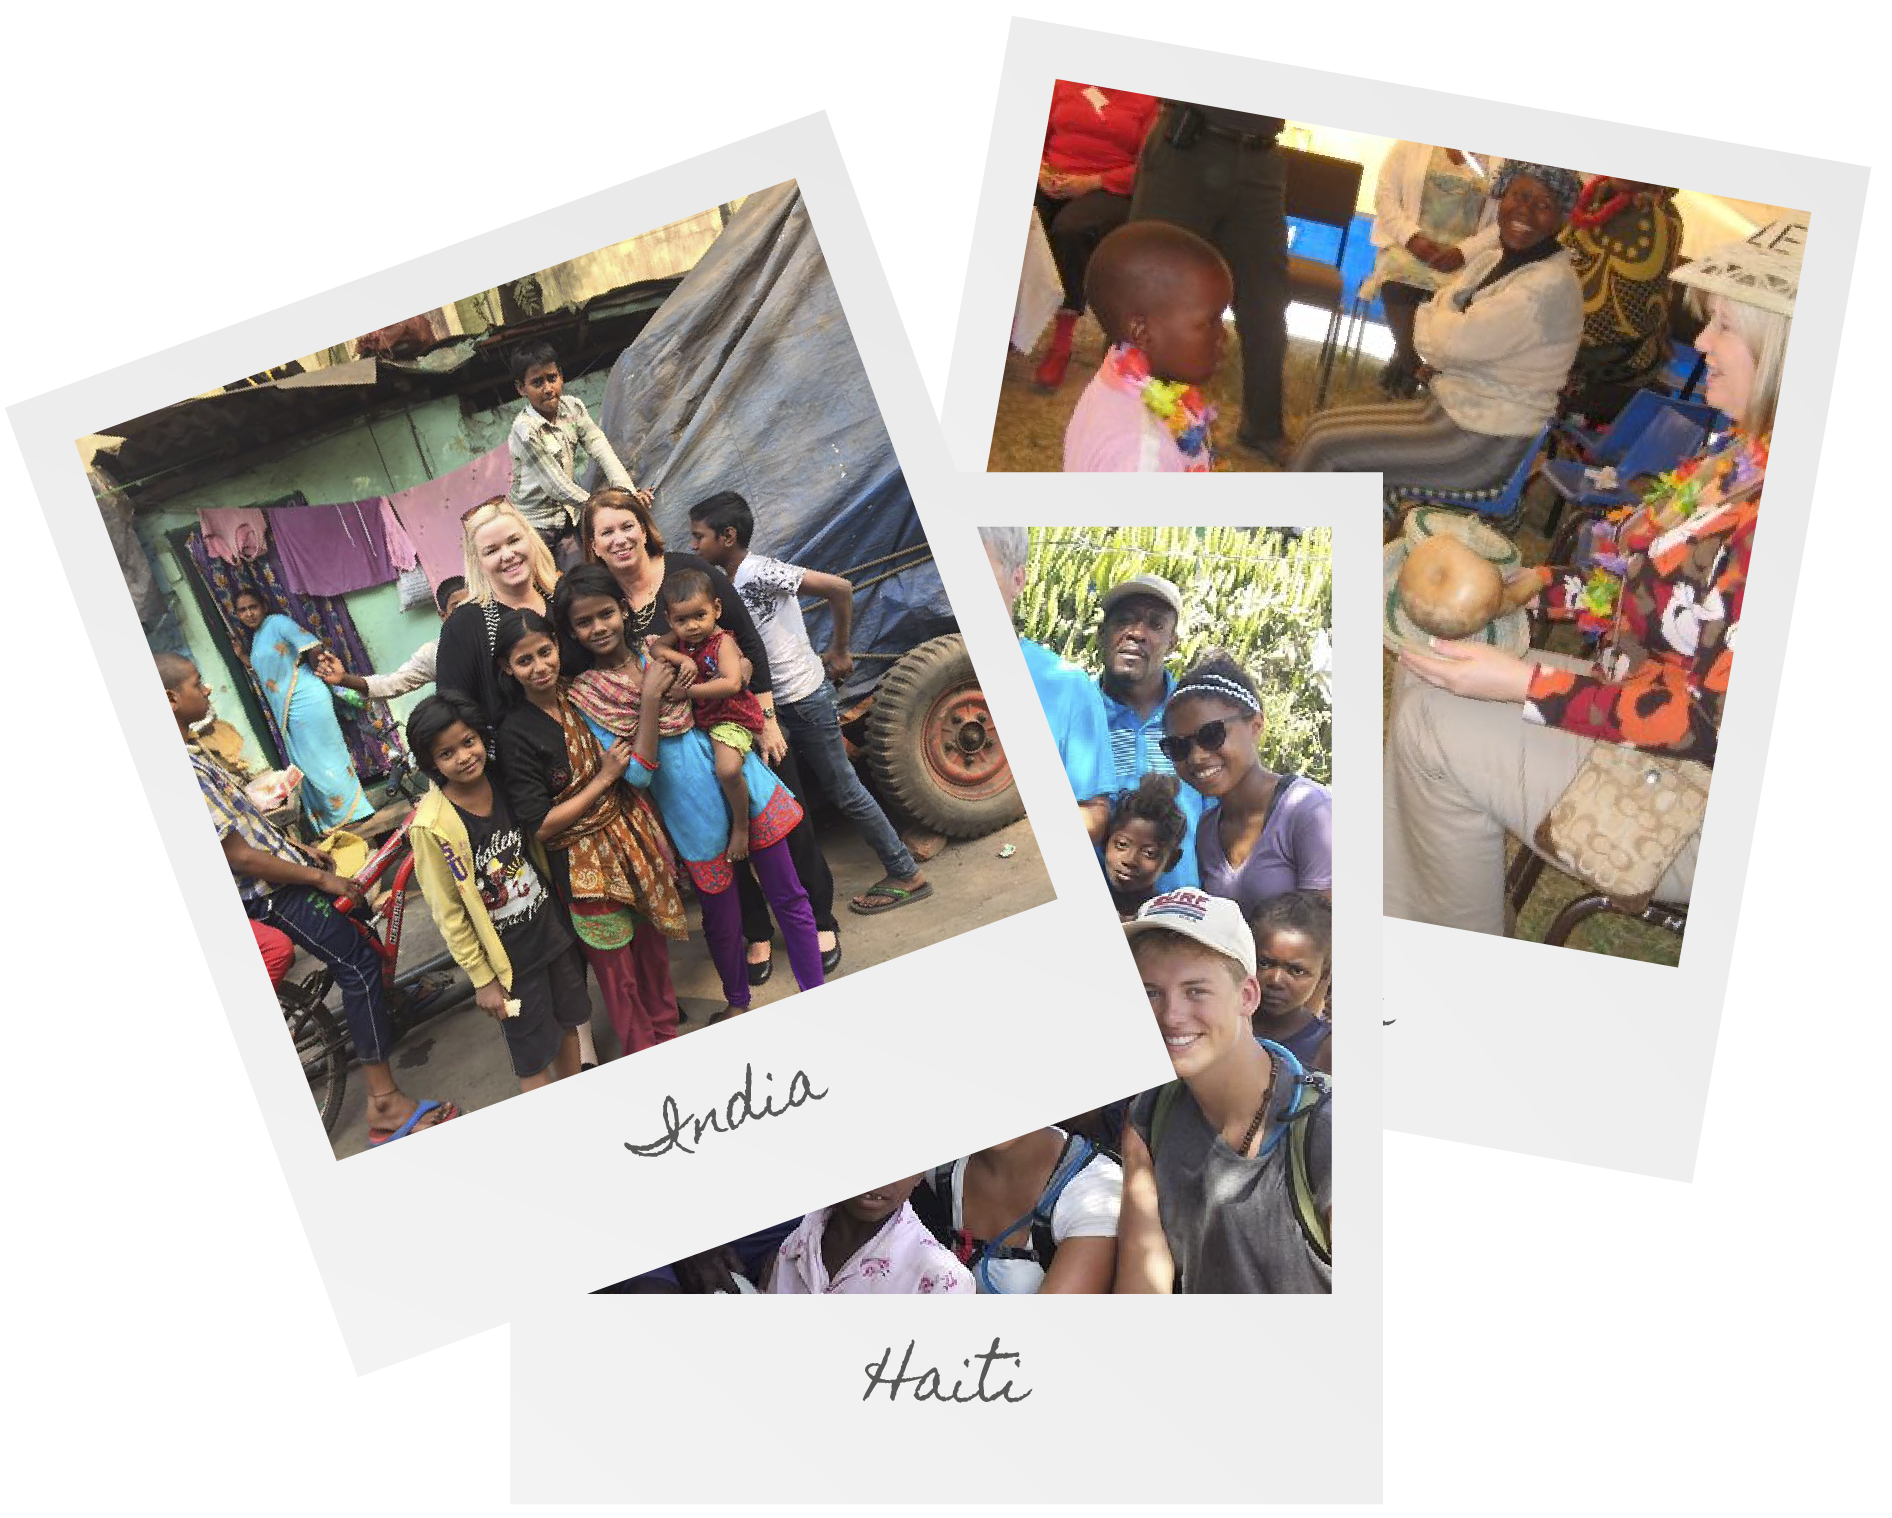 Your generosity helps reach people in India, Haiti, Mexico and around the world!